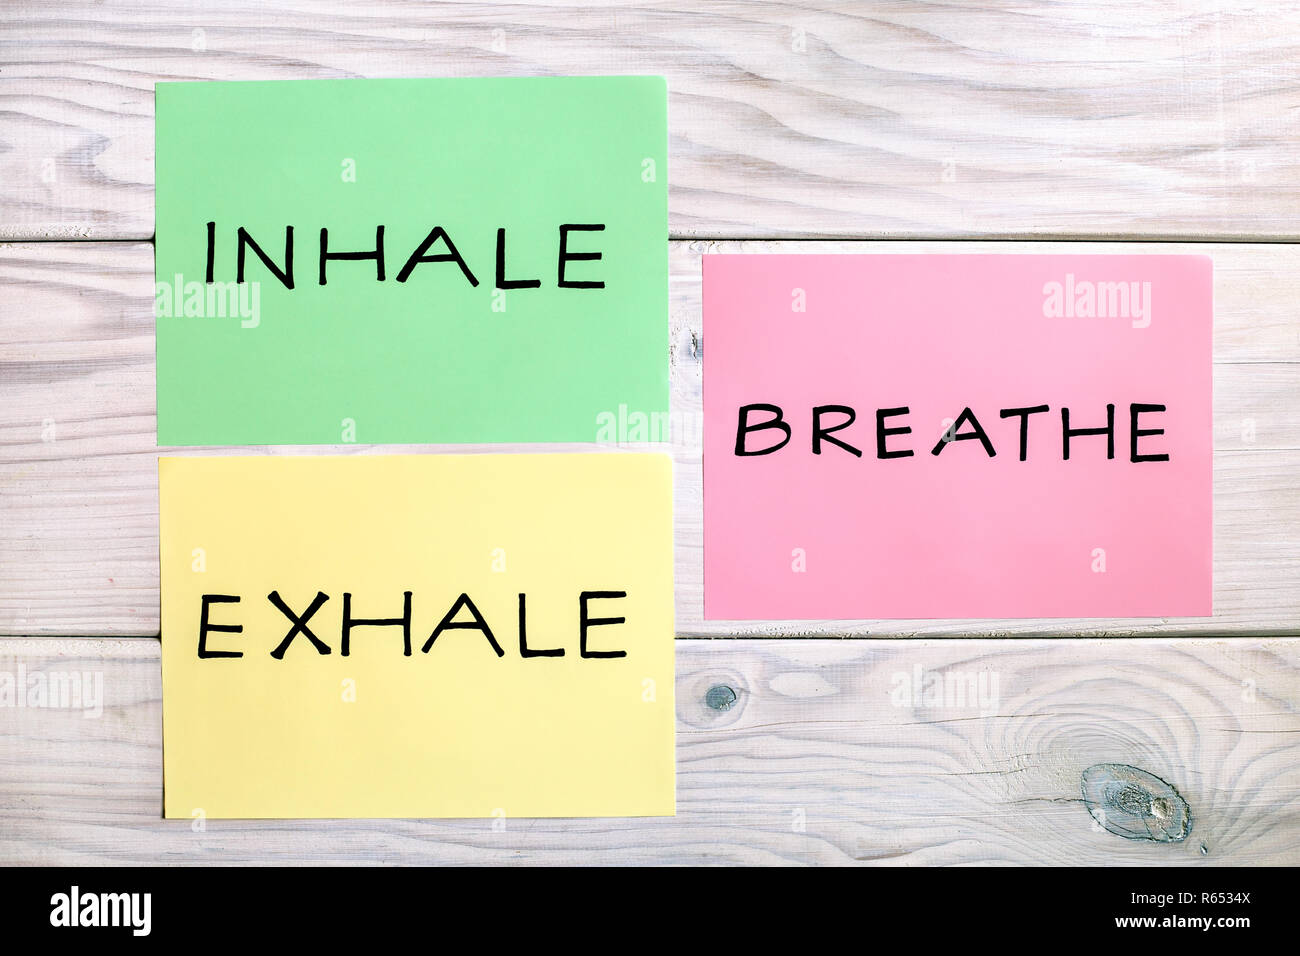 Words inhale,exhale and breath on wooden table. - Stock Image